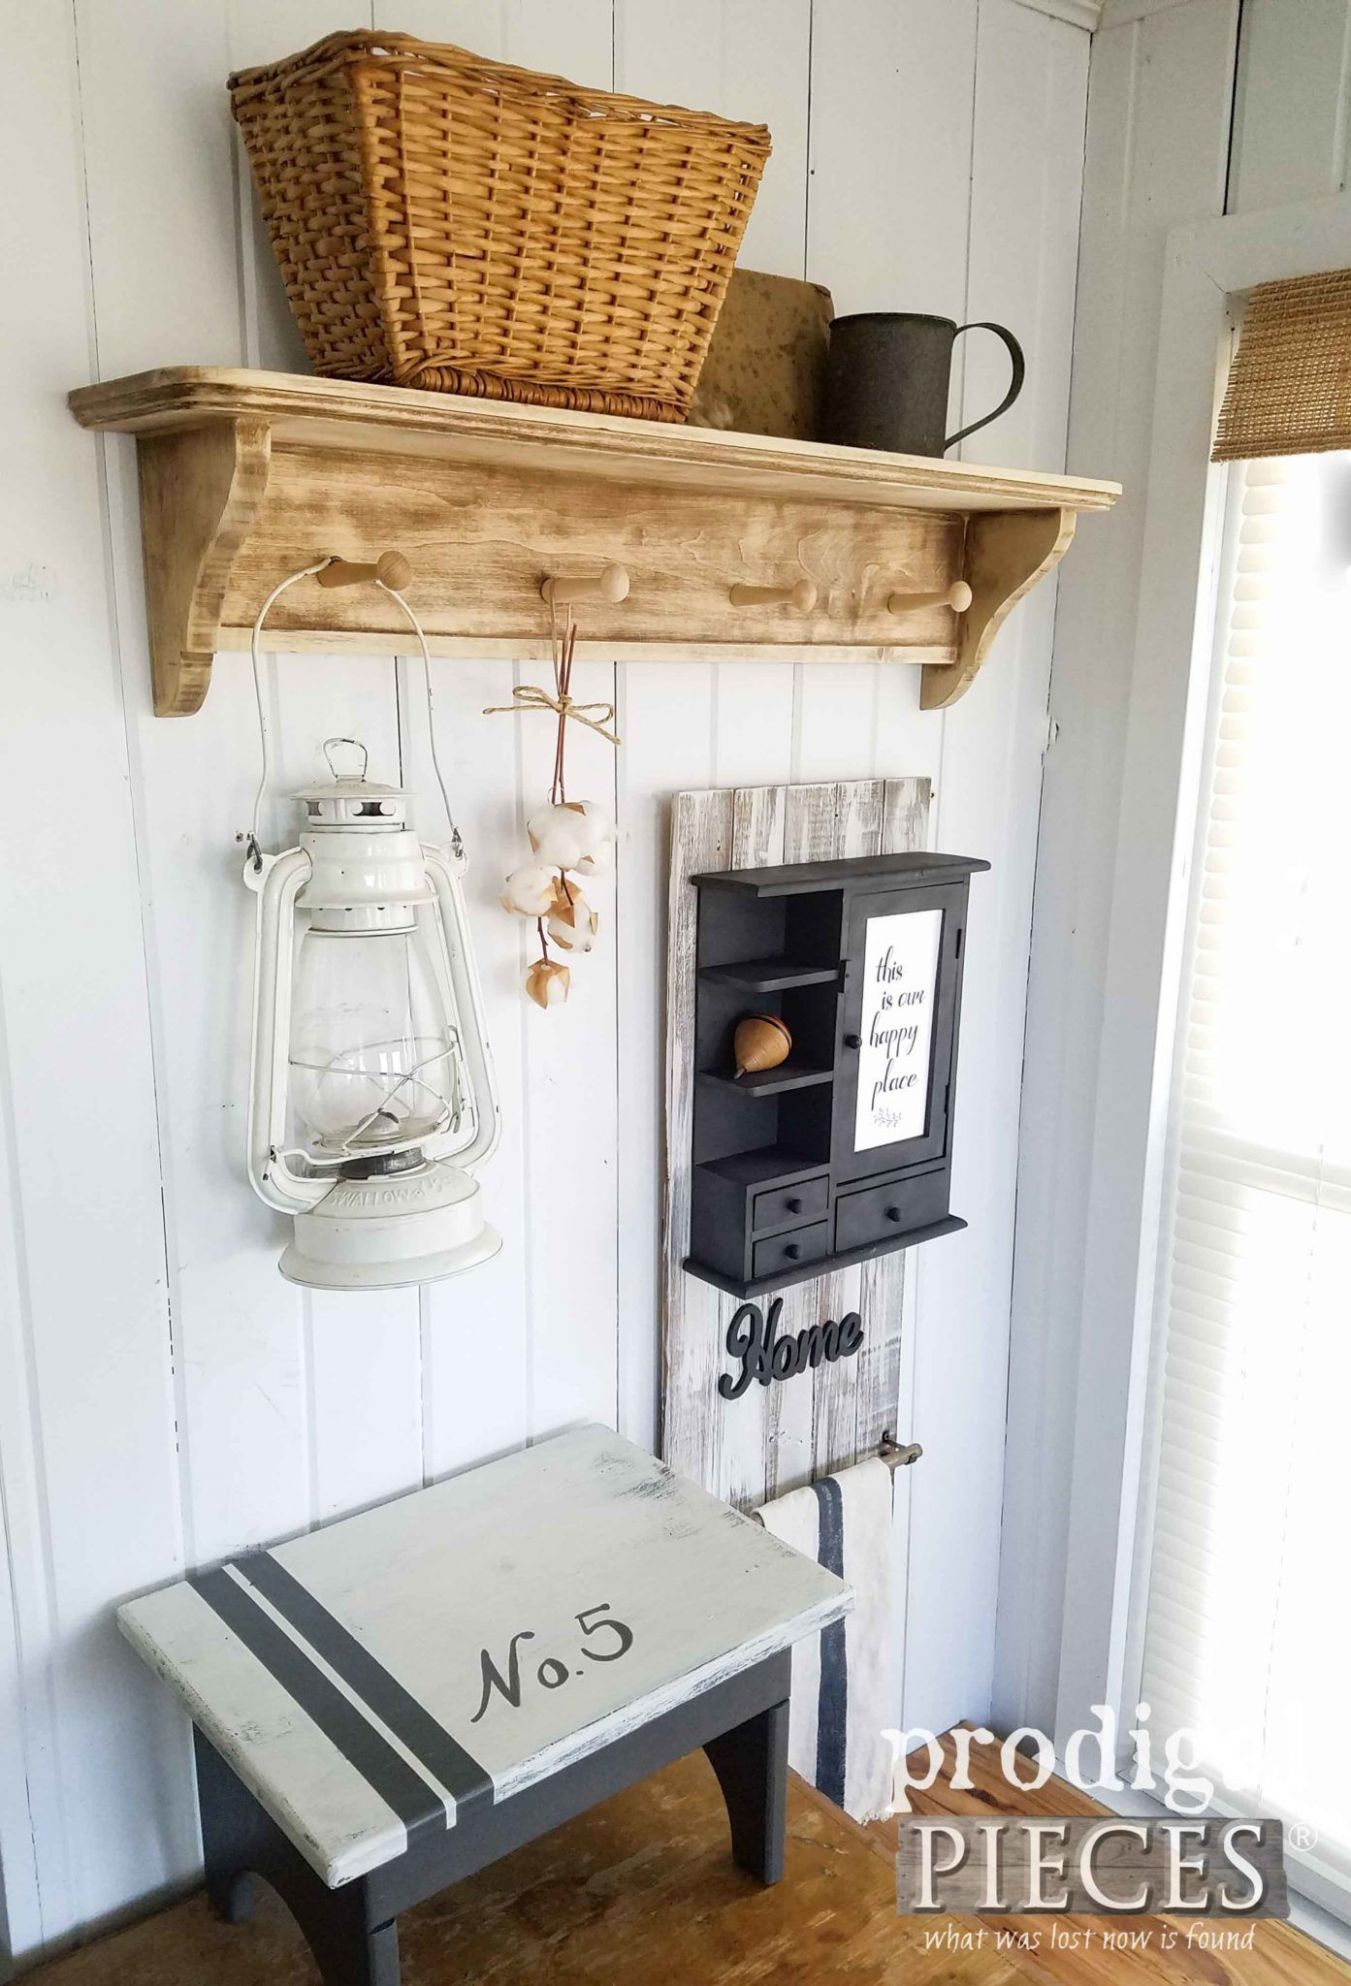 DIY Farmhouse Decor from Thrifted Finds | Funky home decor ..